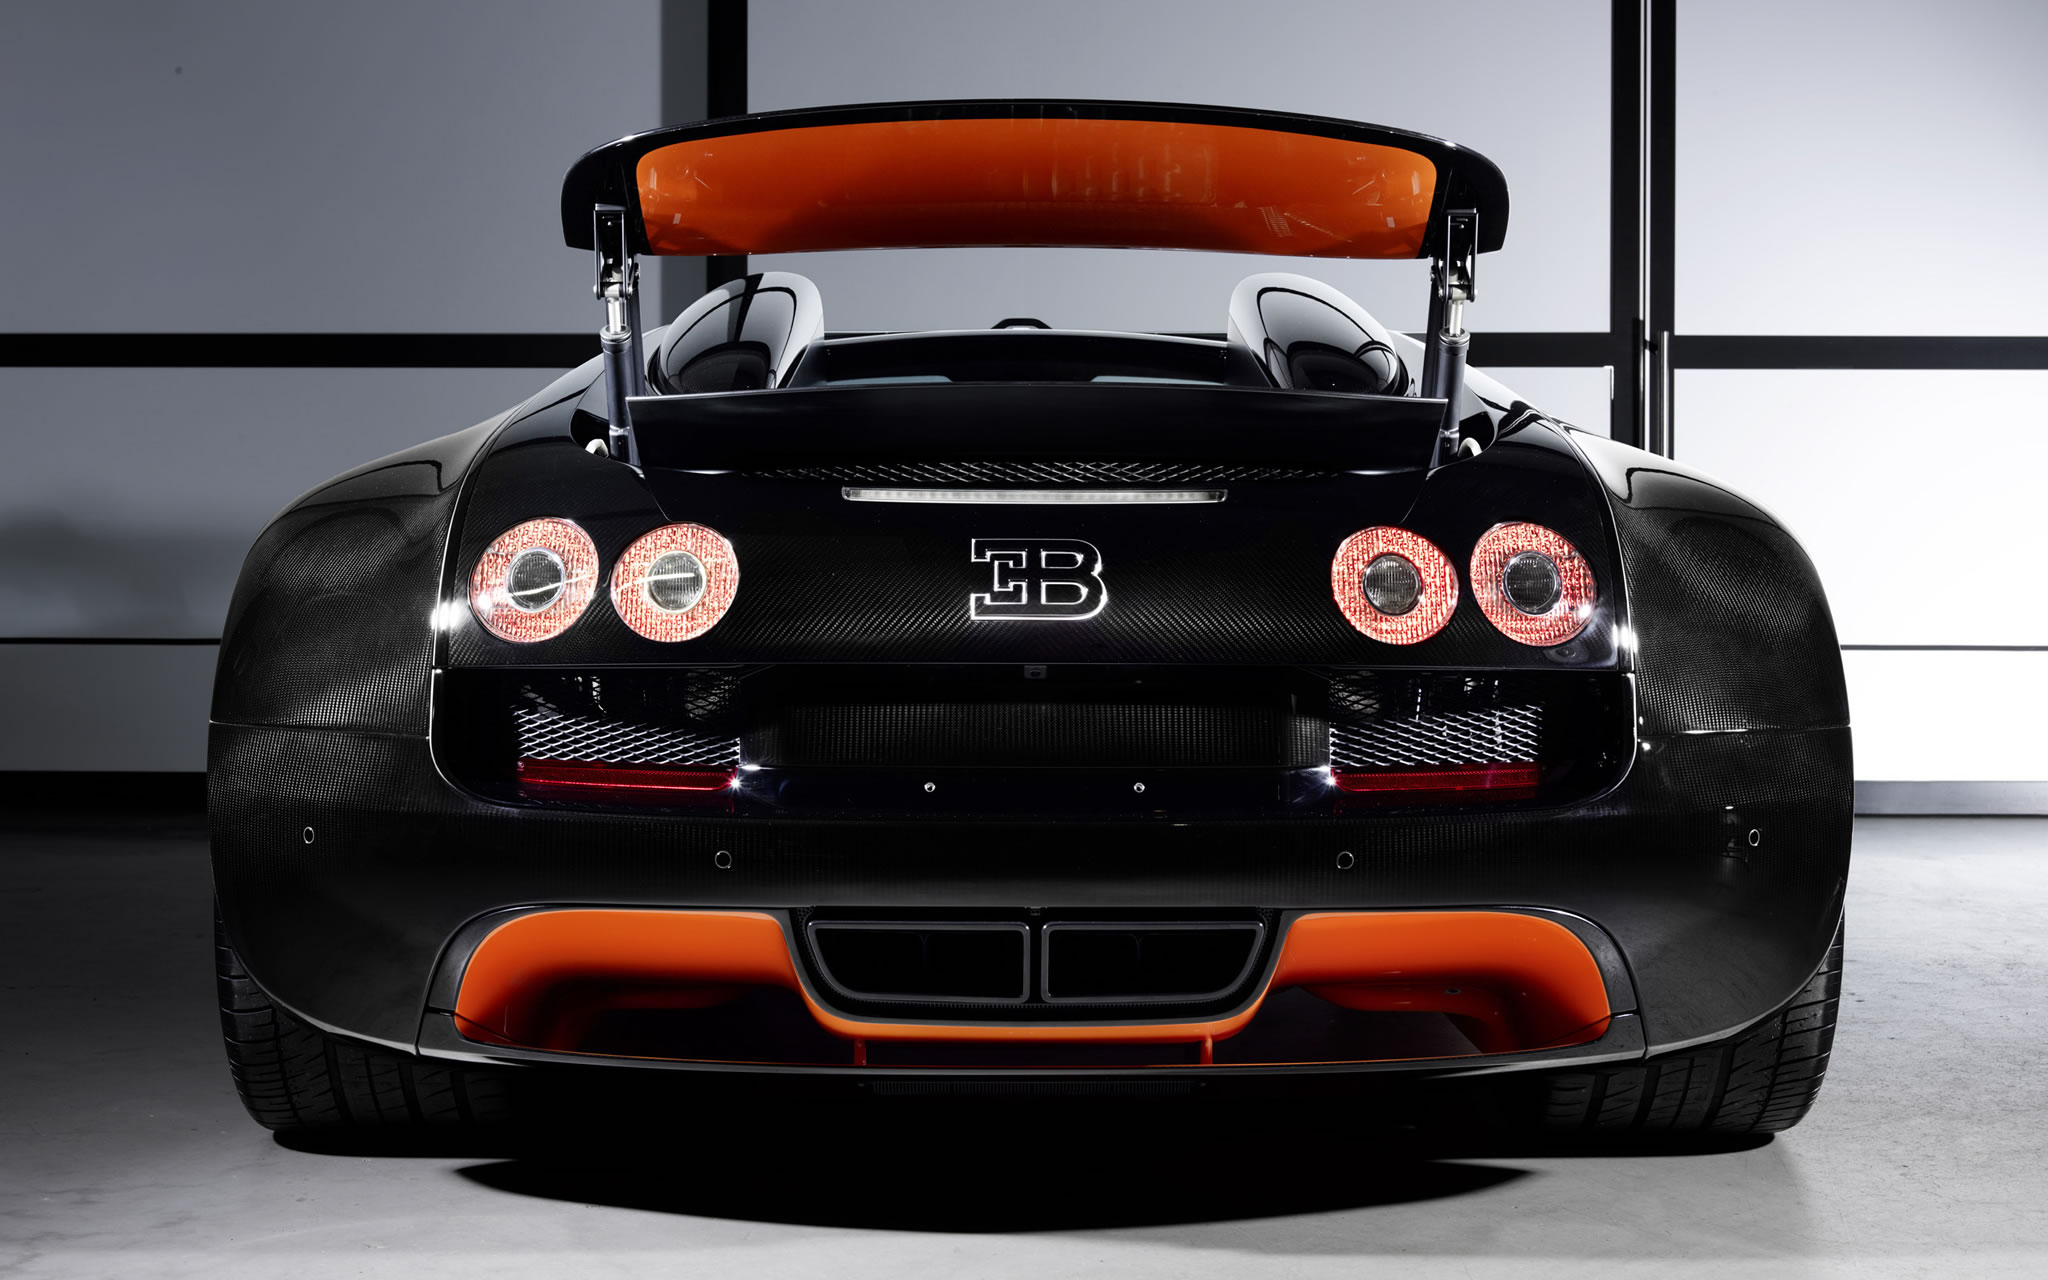 2013 bugatti veyron 16 4 grand sport vitesse wrc rear. Black Bedroom Furniture Sets. Home Design Ideas